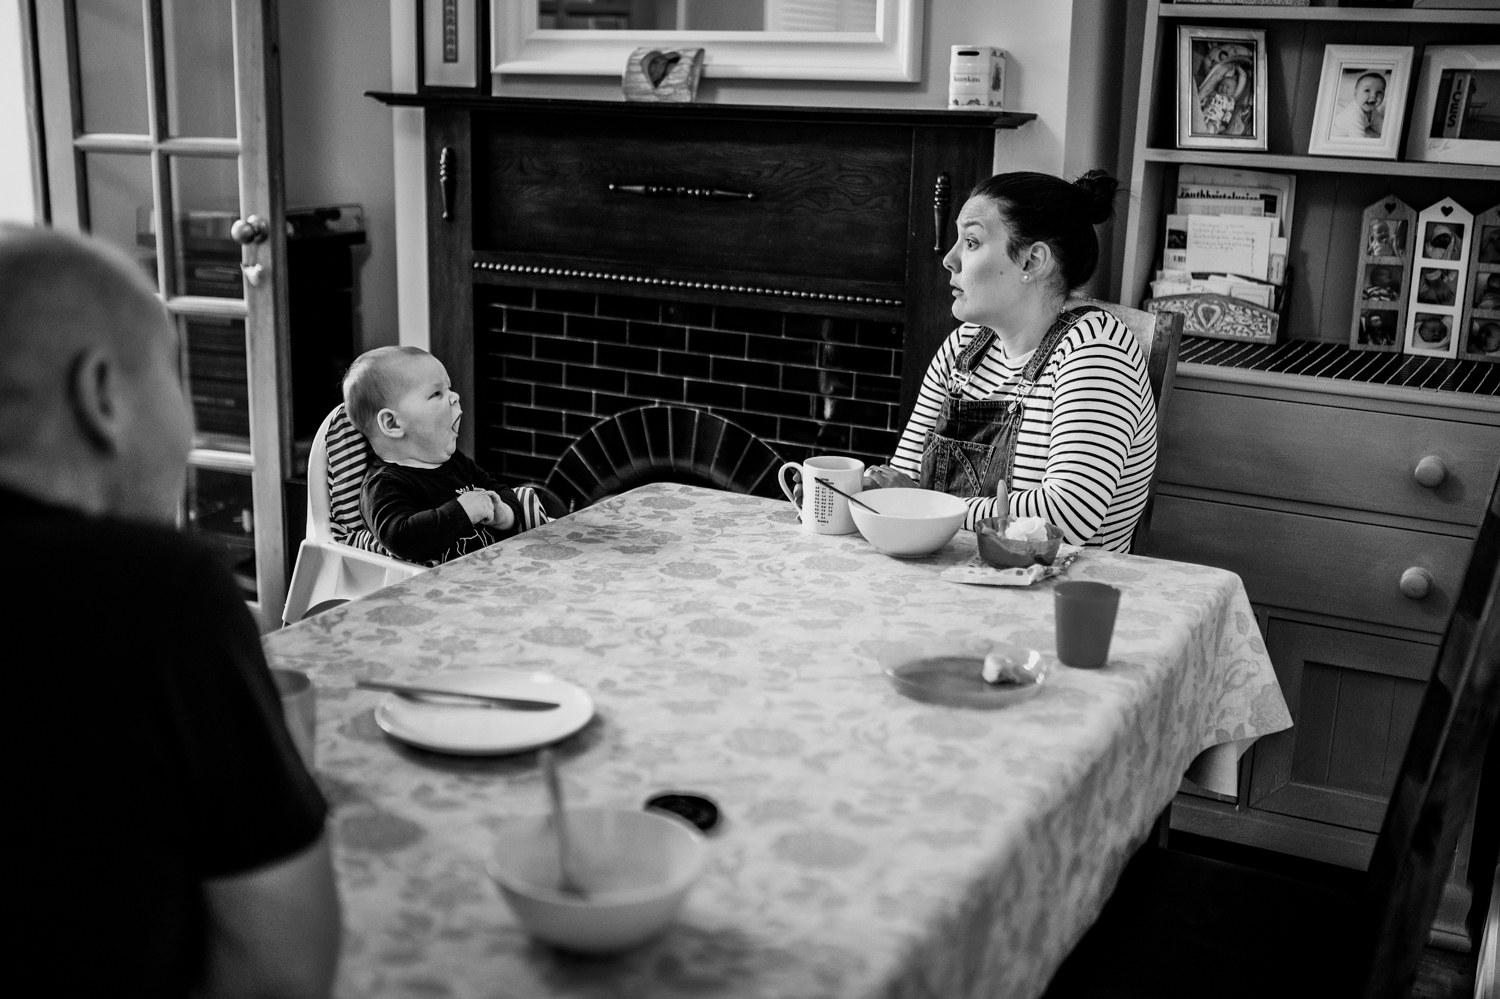 Family sit down at the table having breakfast and the baby yawns at the mother who makes a funny face back during their Day in The Life session in Bristol.